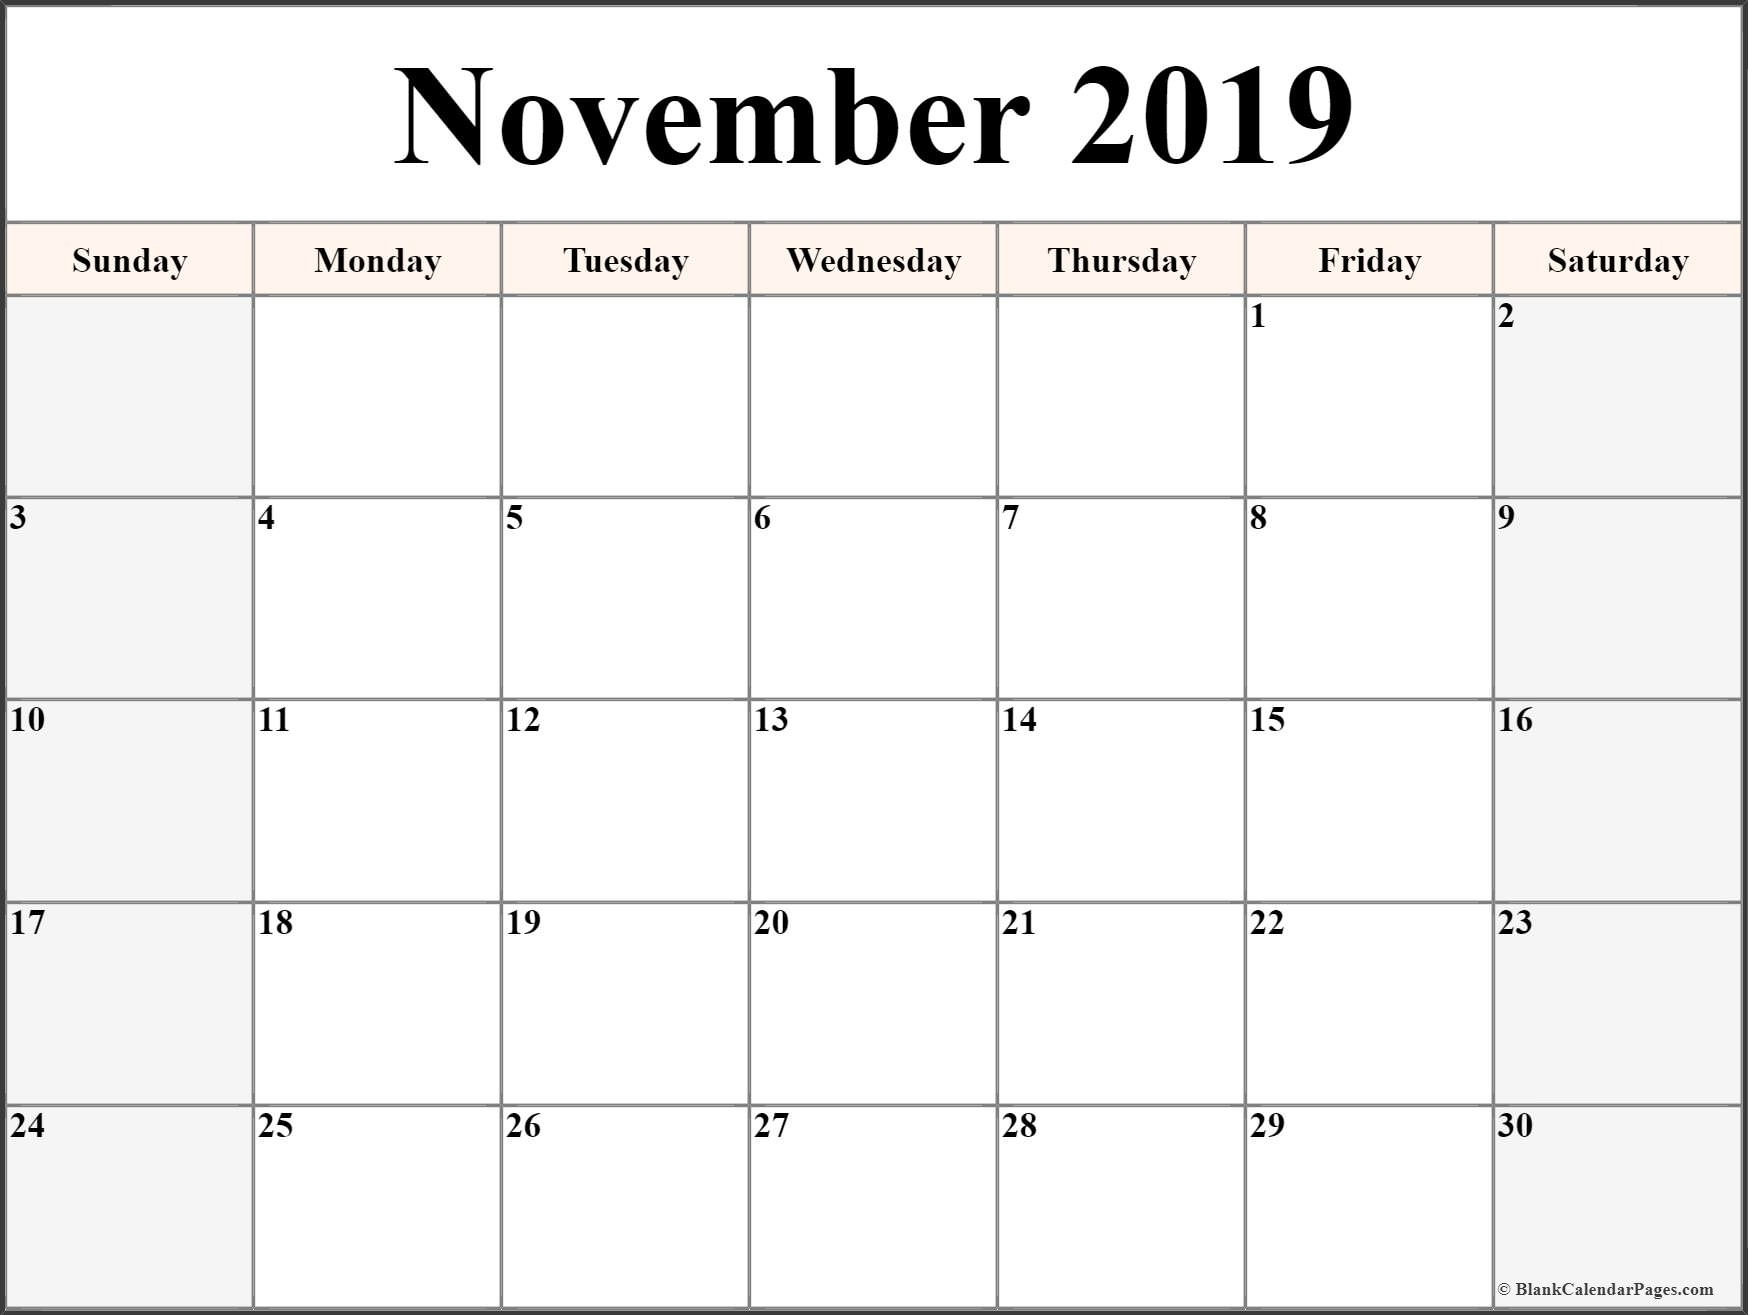 November 2019 Calendar | Free Printable Monthly Calendars Free Printable Calendars Without Weekends